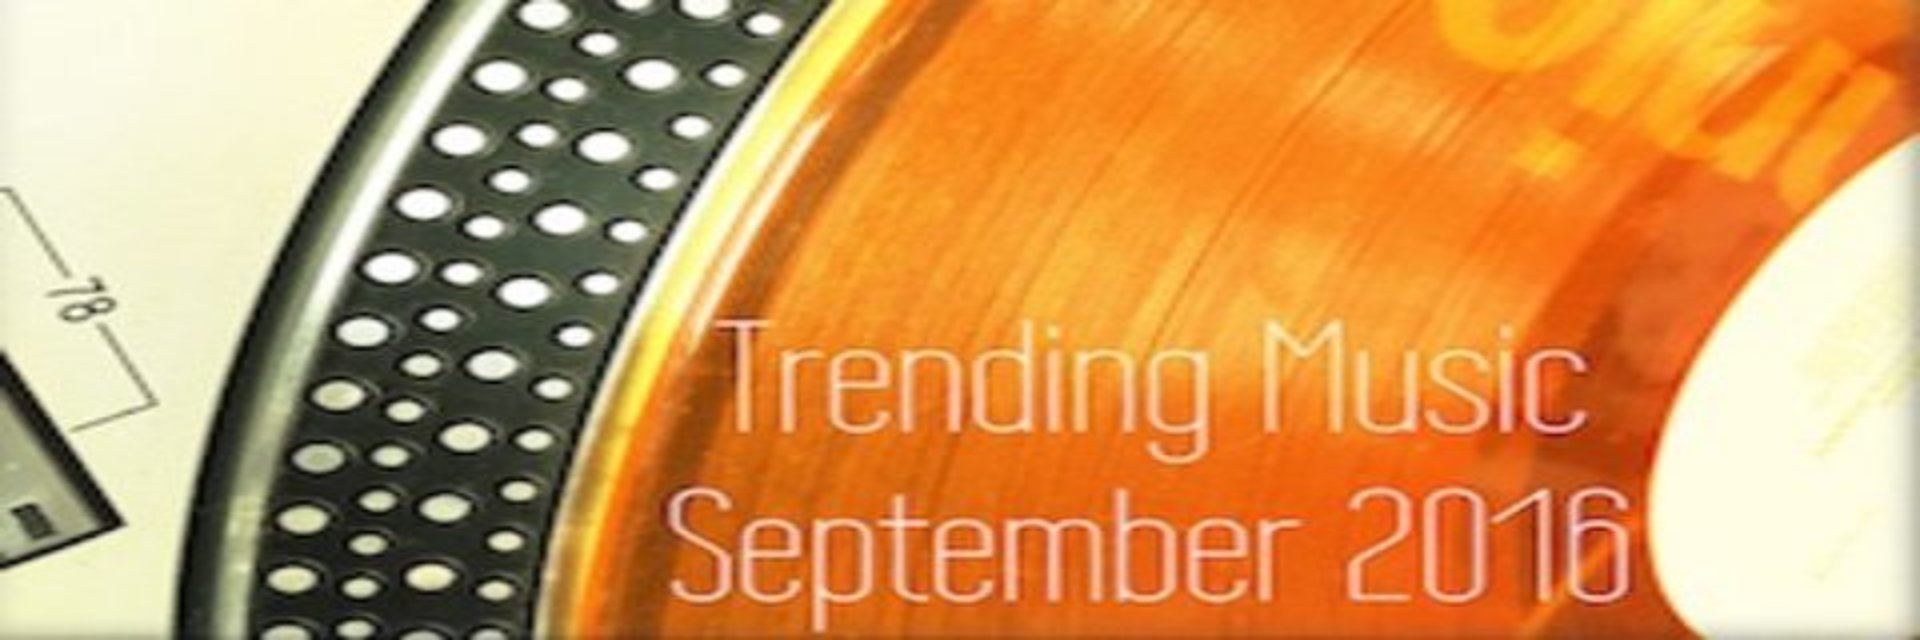 Saint Elmo's: Trending Music September 2016